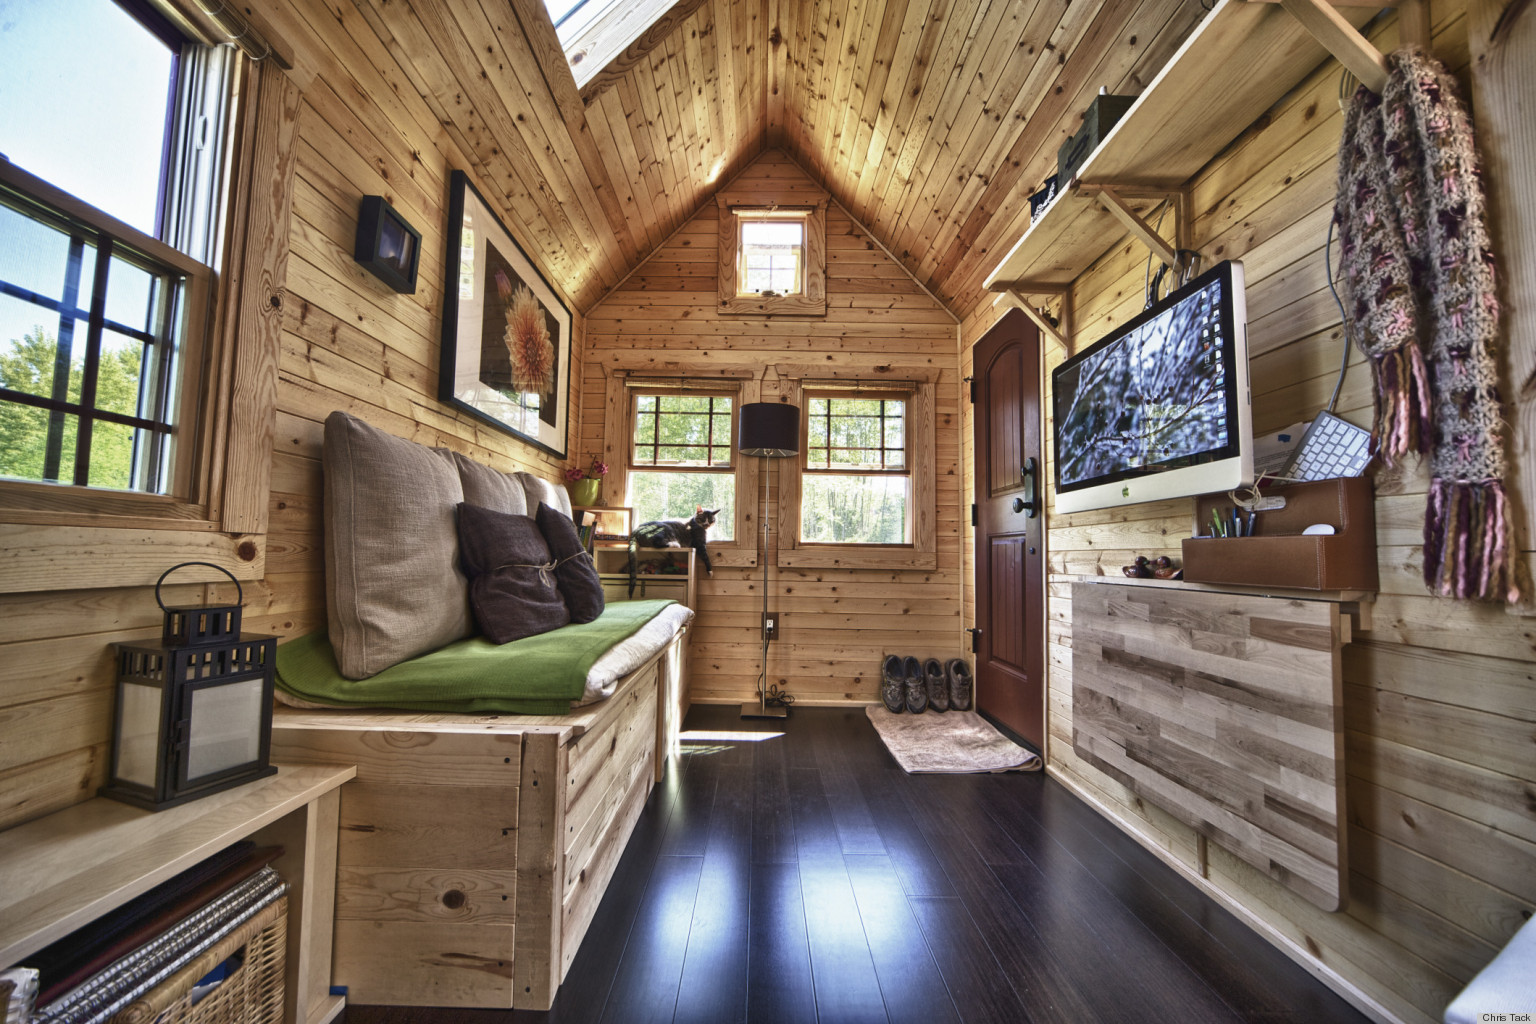 Furniture For Tiny Houses Interiors : Chris And Malissa Tacks Tiny Home Transformed This High-Tech Couple ...